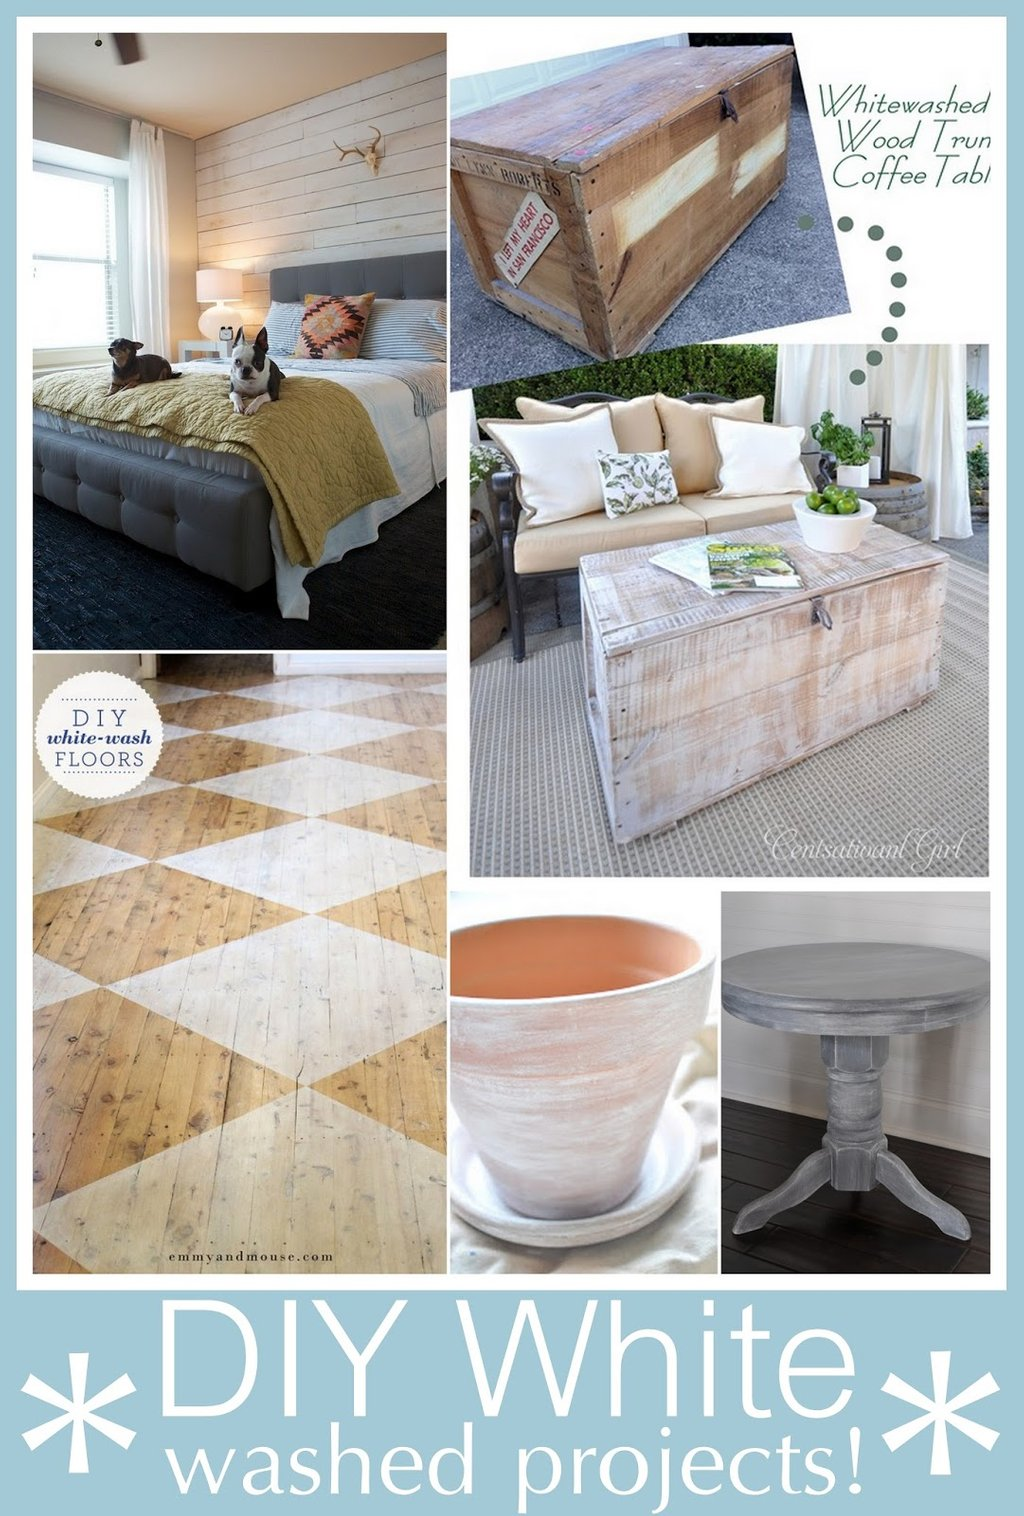 Diy White Washed Project Craft Maniac Make A Tree Trunk Coffee Table